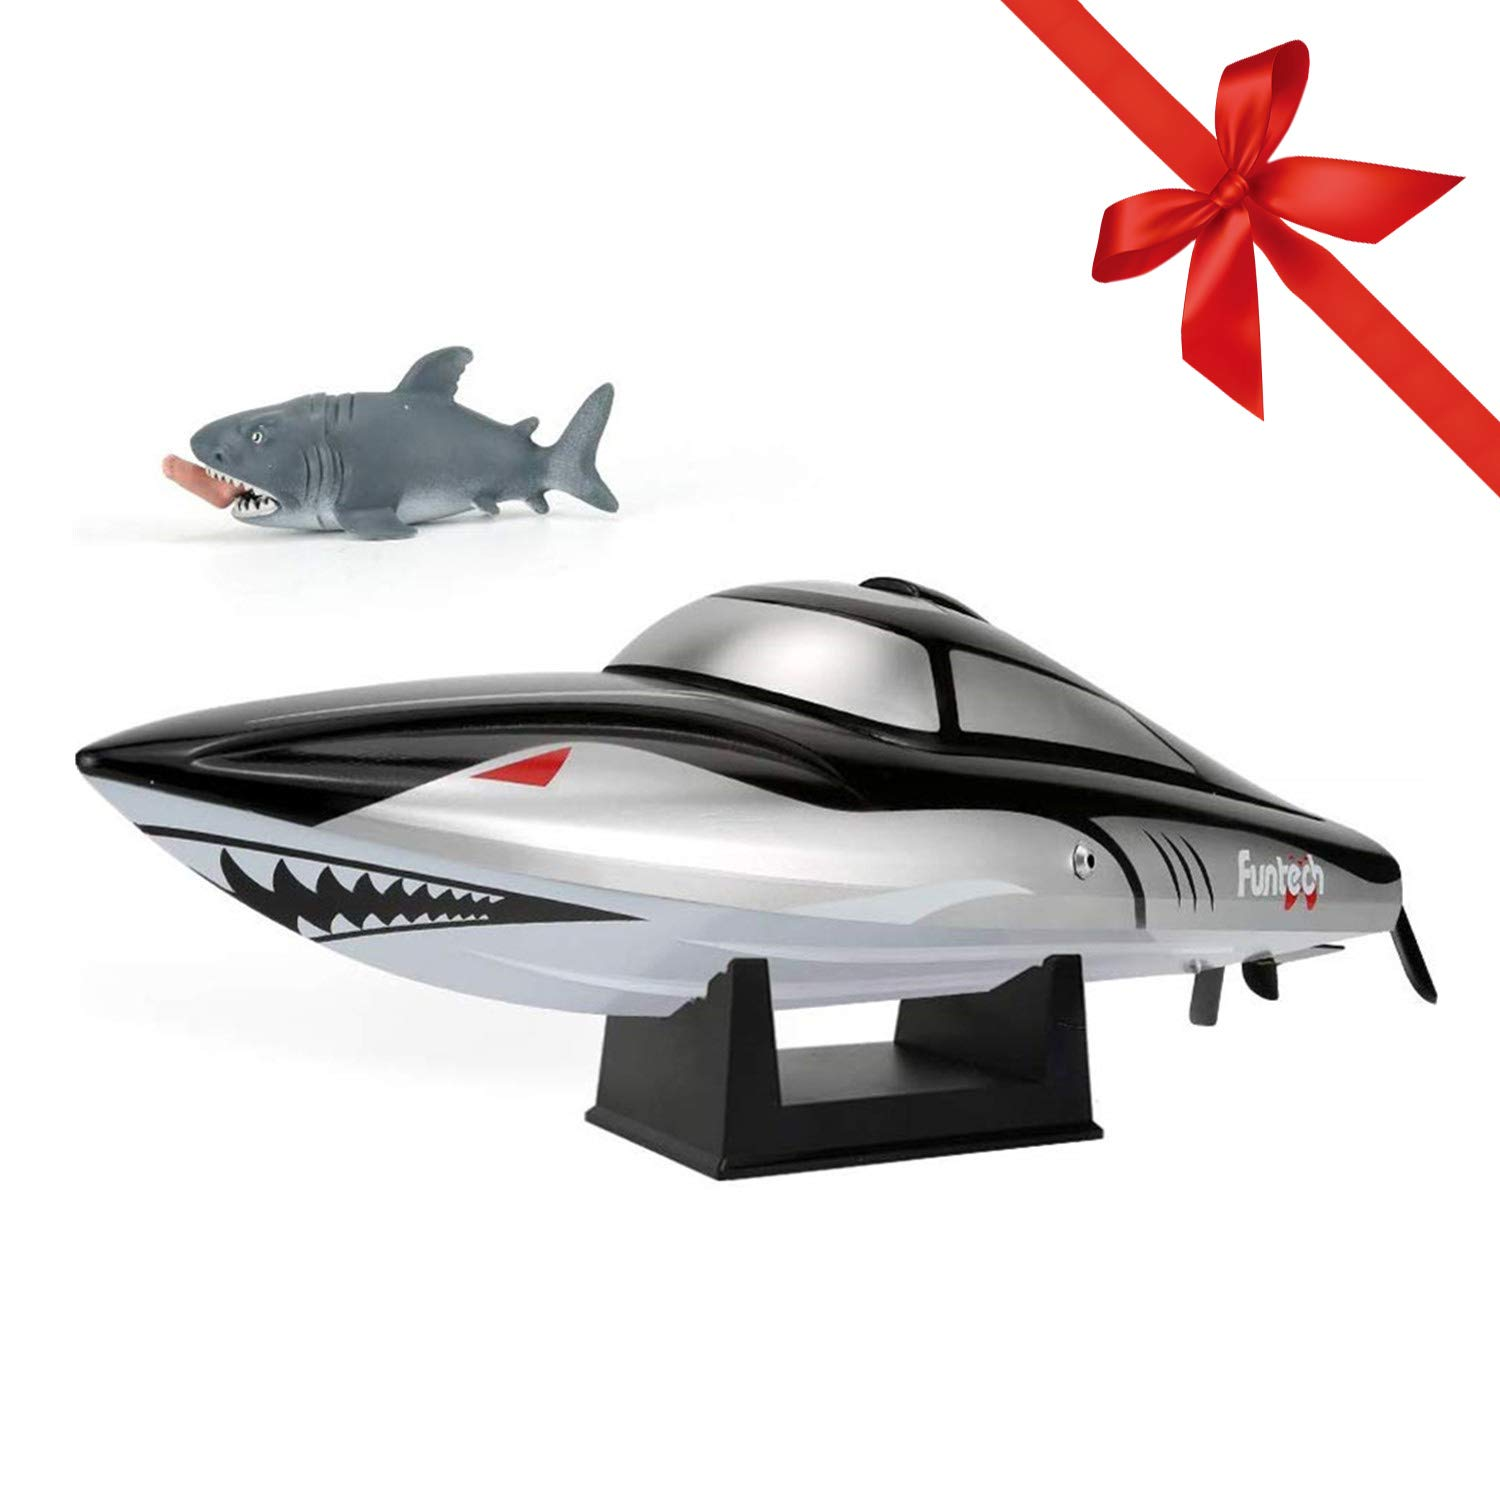 FUNTECH Shark RC Boat for Kids Adults - Remote Control Boats for Pools and Lakes, 25 mph High Speed RC Boats with Reverse Function & Capsize Recovery, a Must for Outdoor Adventure